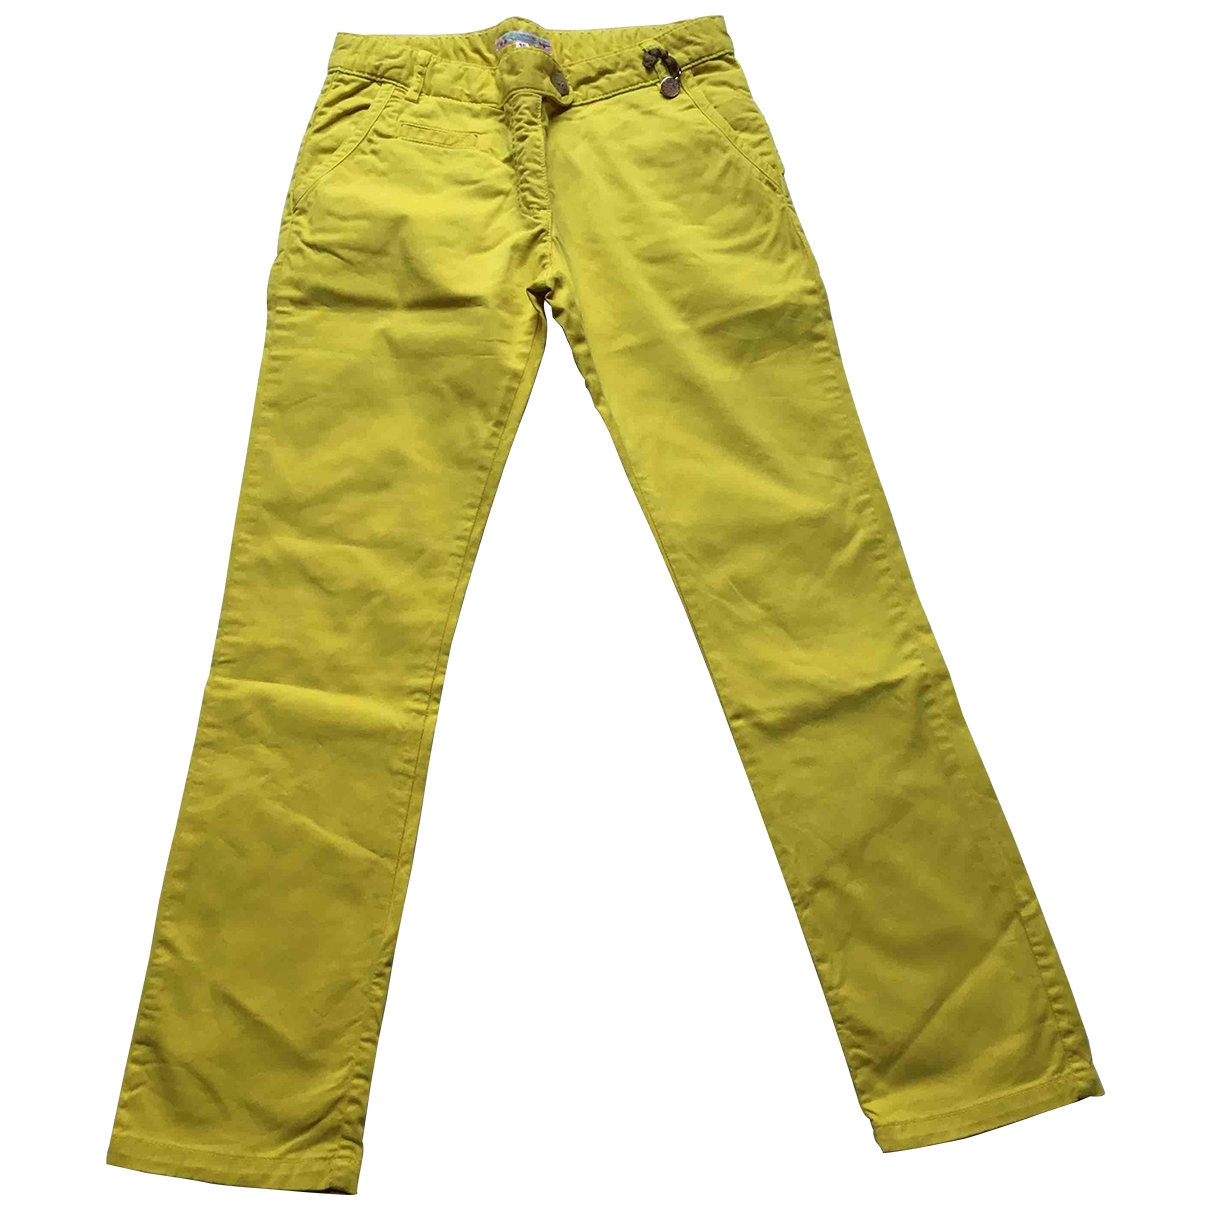 Bonpoint \N Yellow Cotton Trousers for Kids 12 years - XS FR